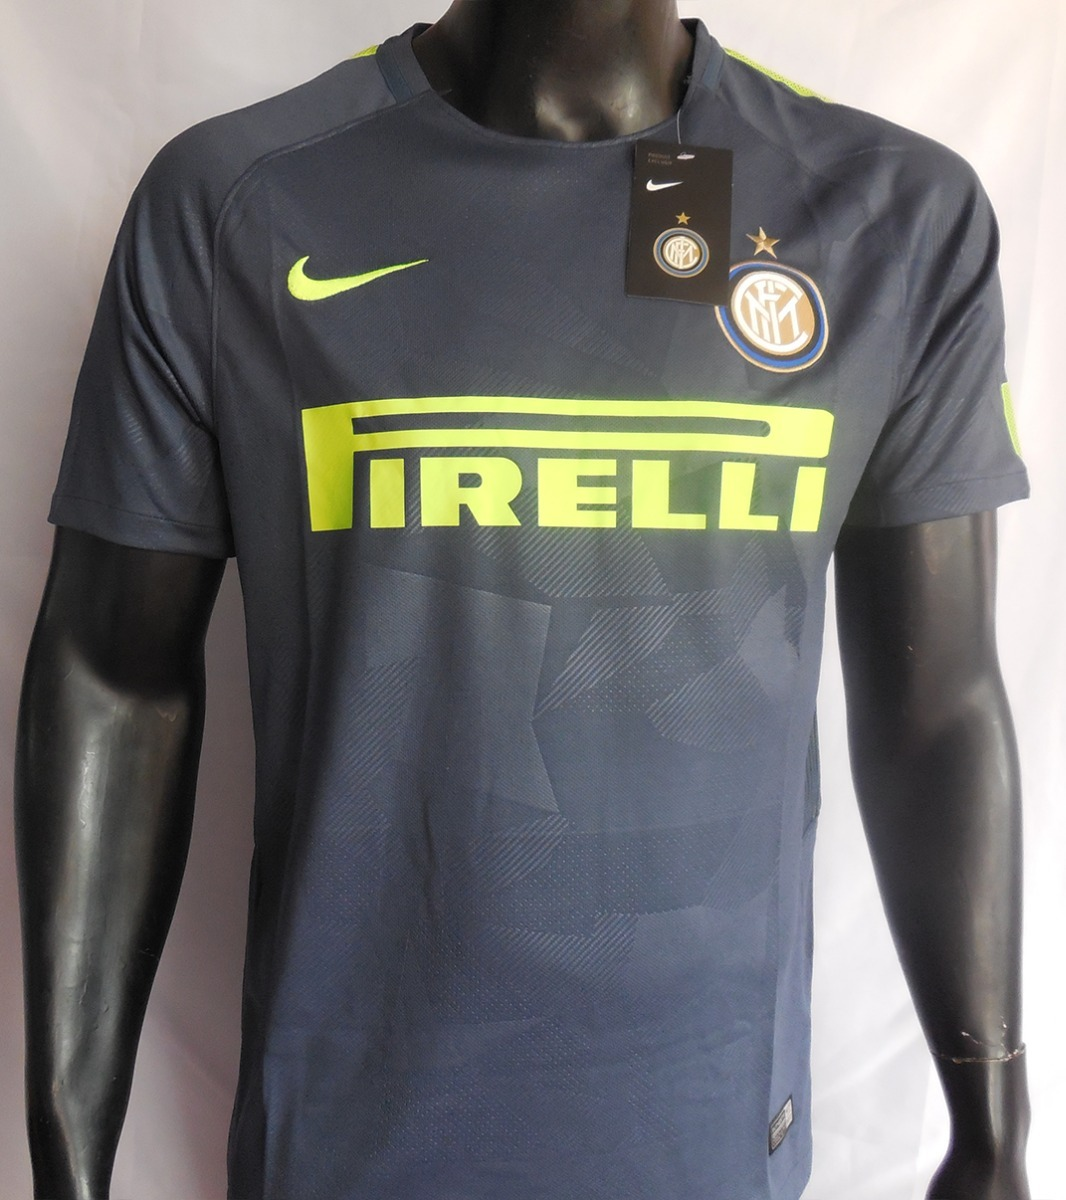 6c3cd87ff2617 camiseta inter milan 2017 - 2018 third puma. Cargando zoom.